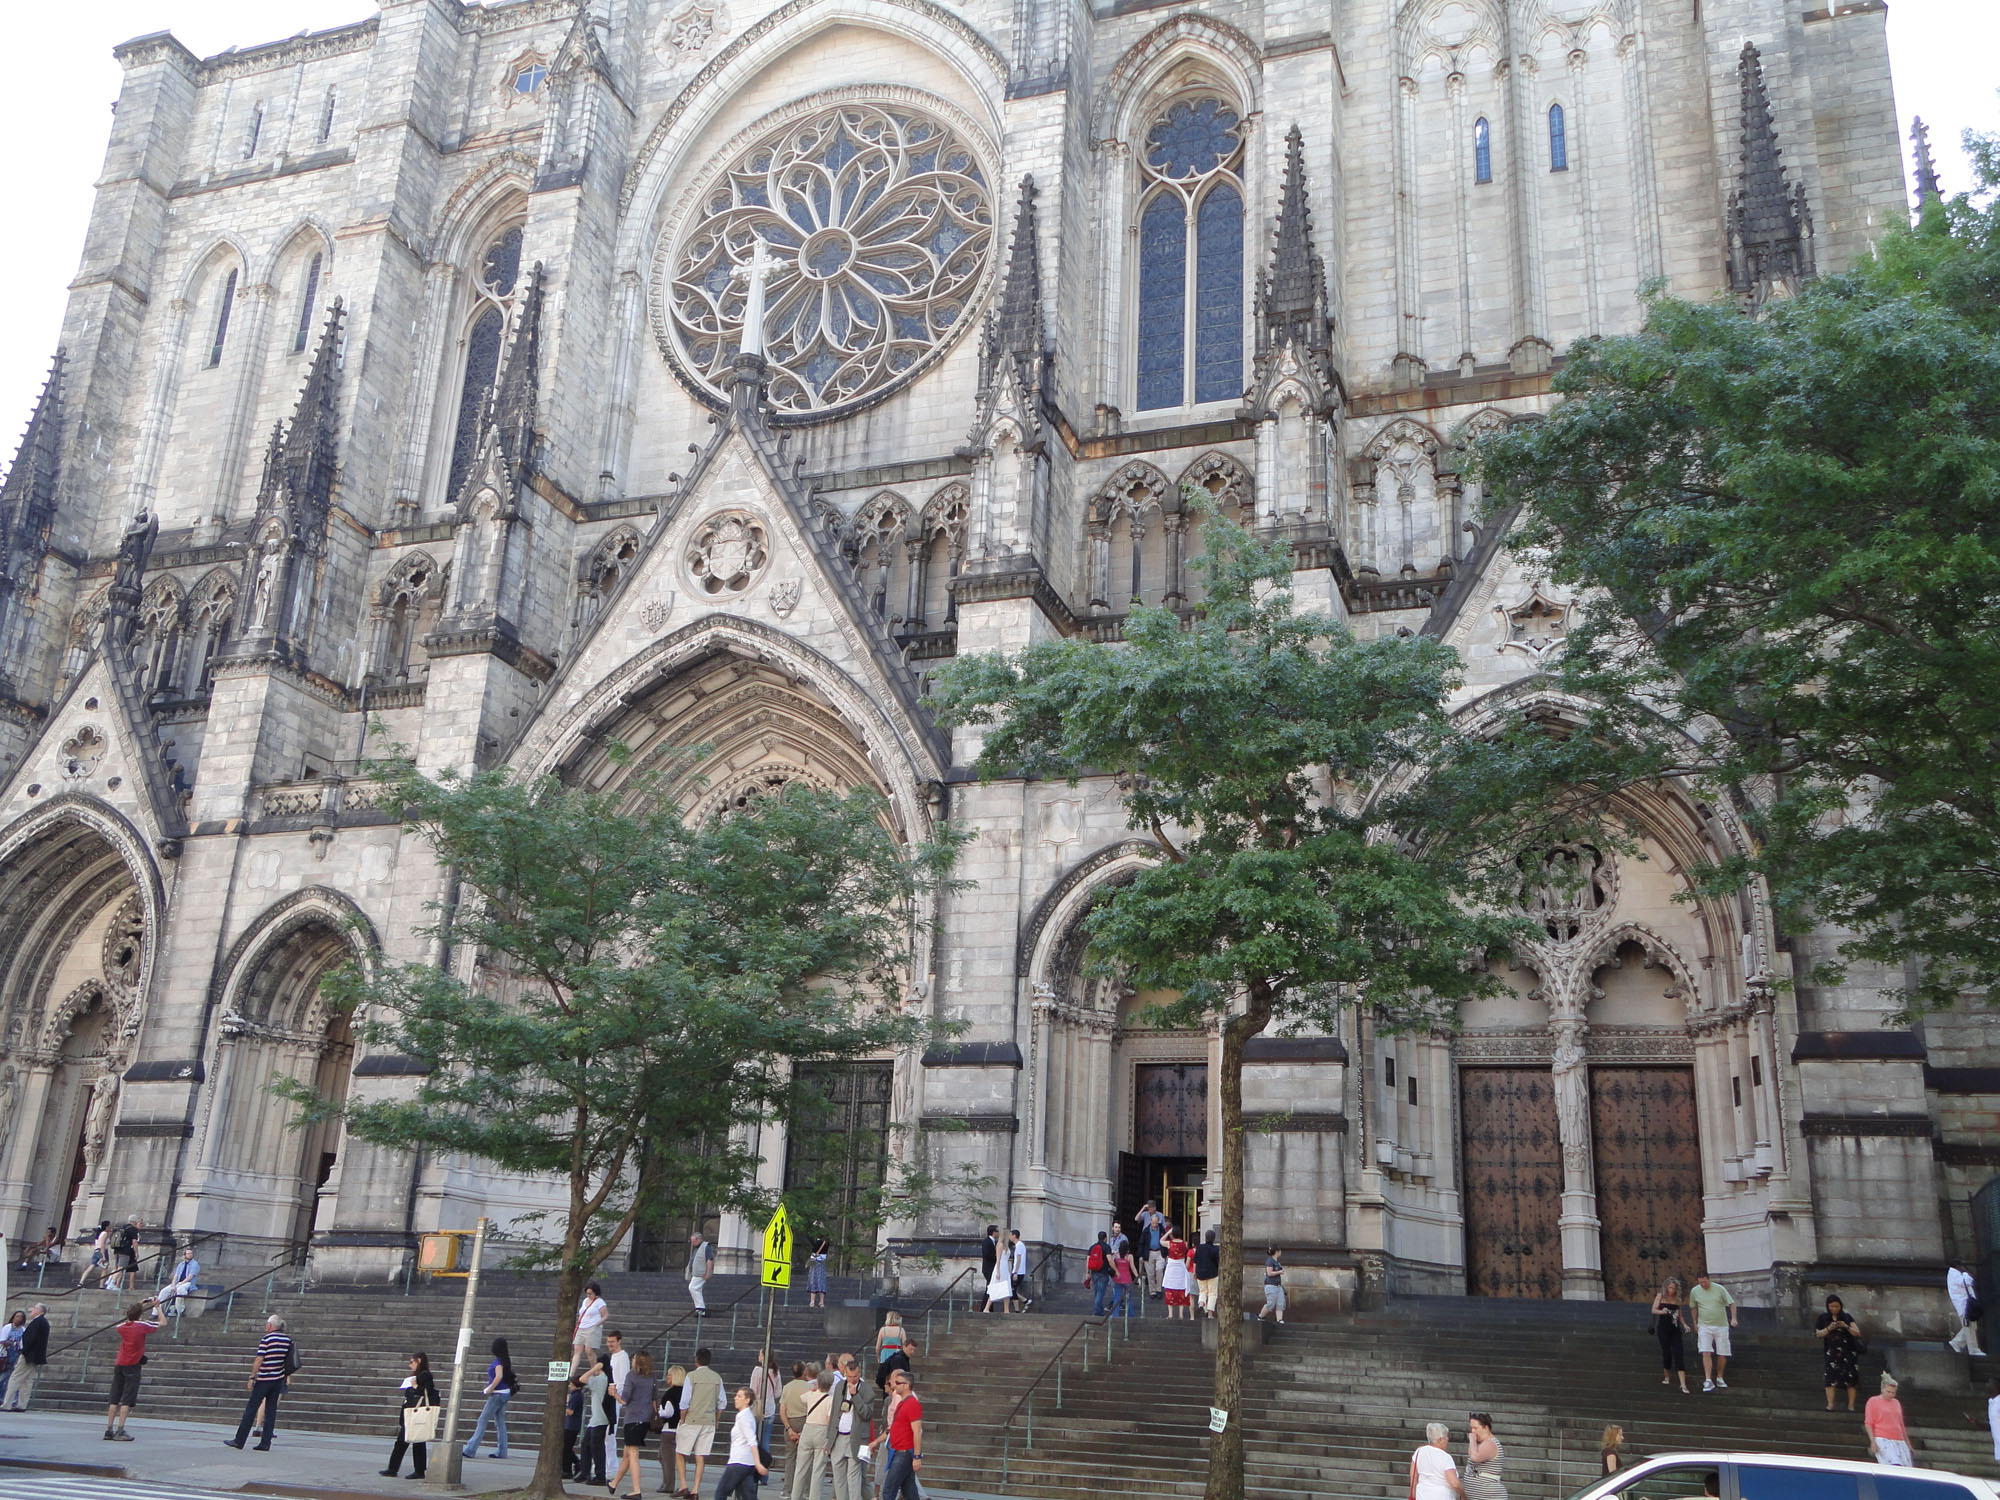 st john the divine The cathedral of st john the divine is a great and beautiful landmark inside, but  its exterior leaves much to be desired, particularly its surroundings, which were.